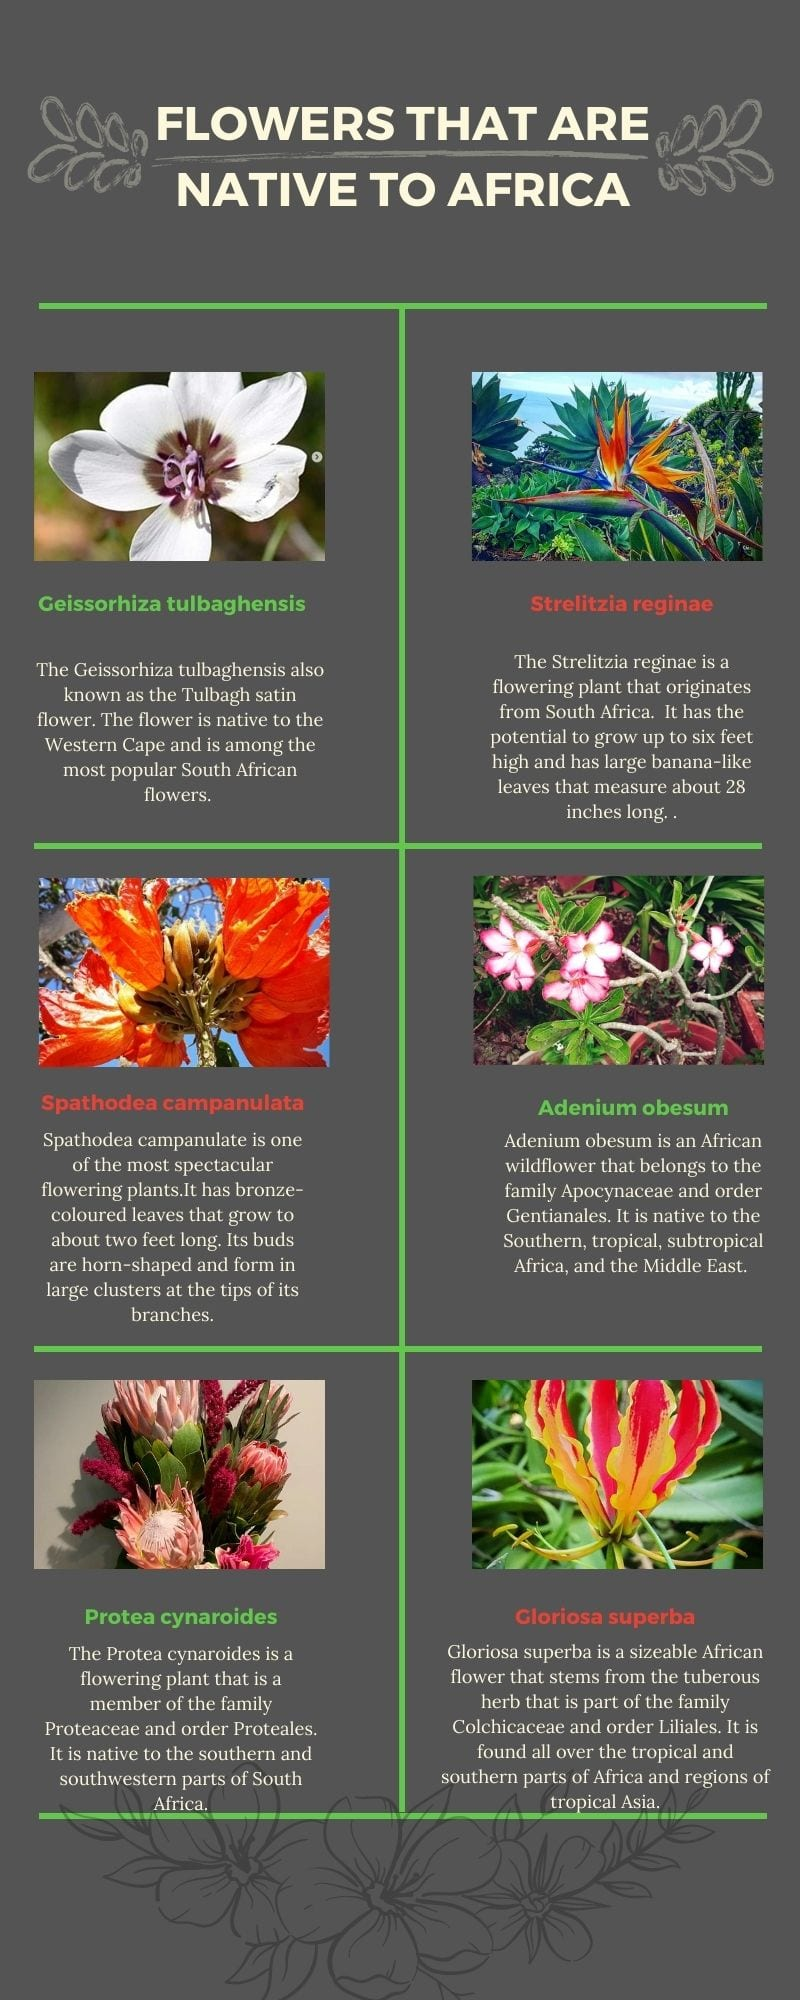 flowers that are native to Africa with pictures